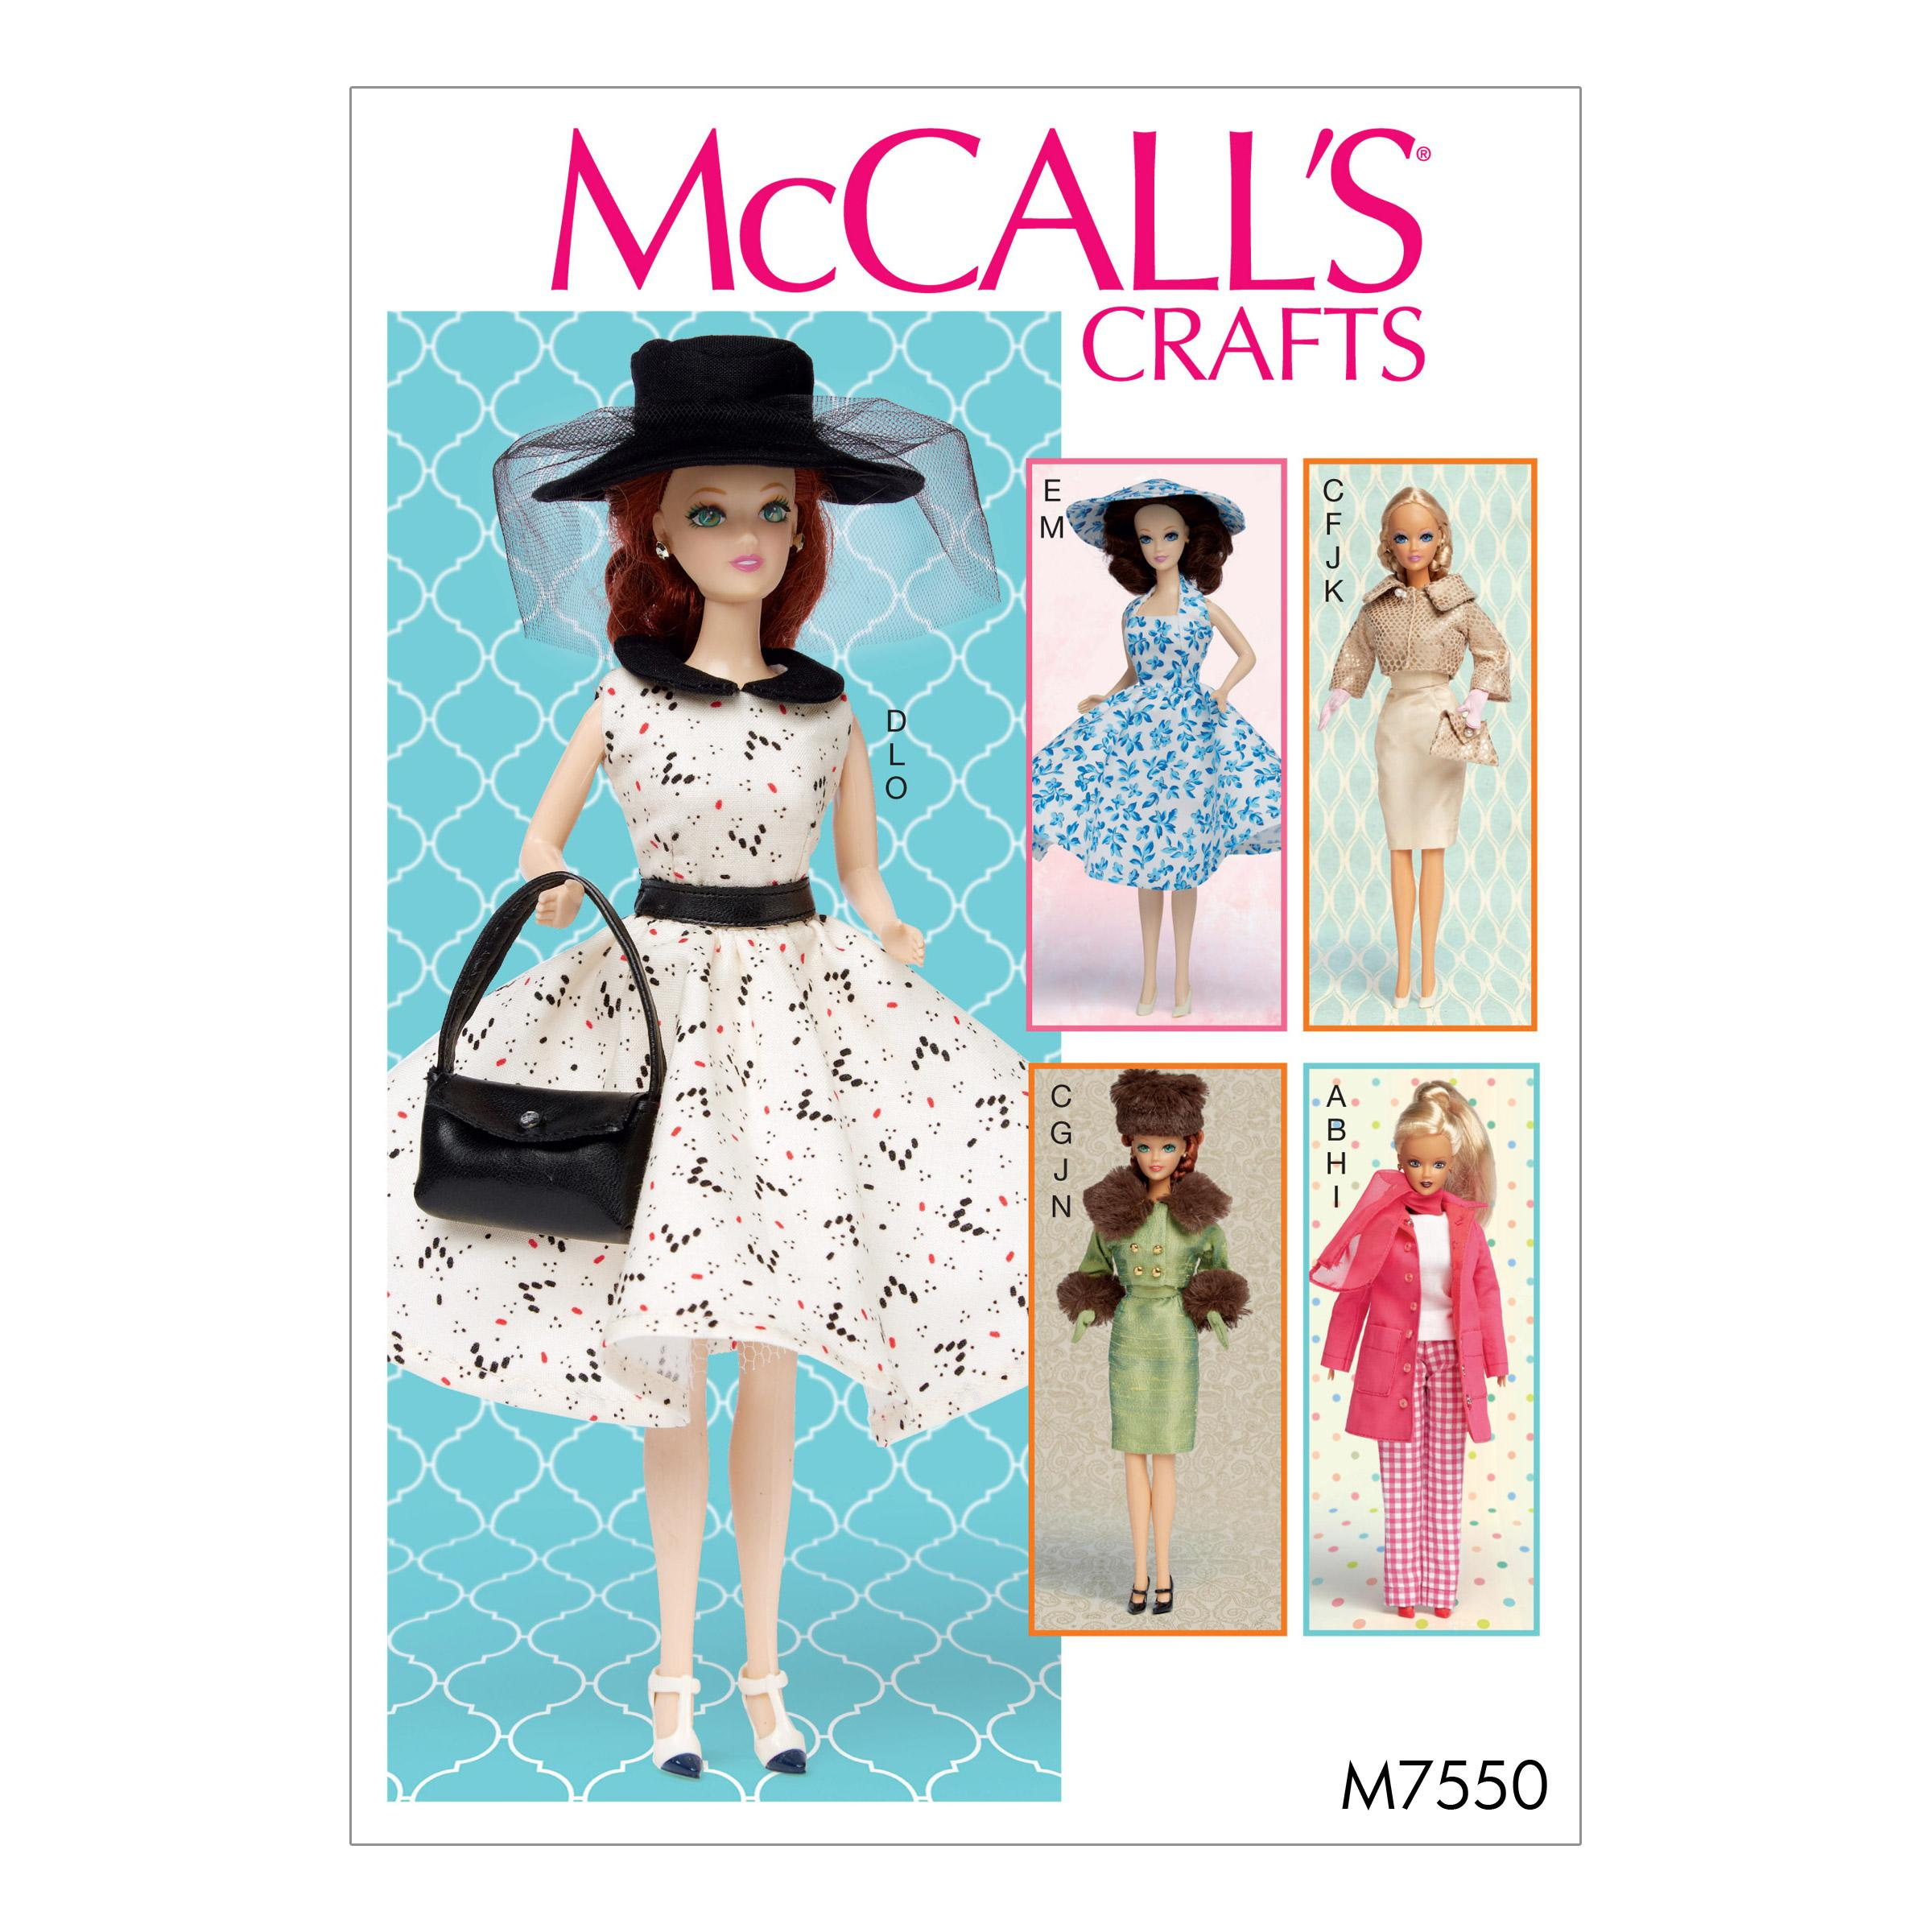 McCalls M7550 Crafts Dolls & Toys